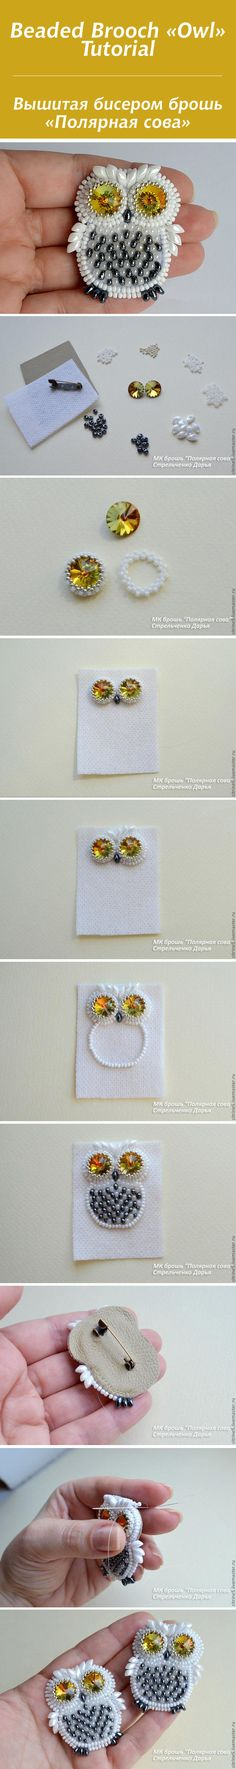 "Вышитая бисером брошь ""Полярная сова"" / Beaded Brooch ""Owl"" Tutorial #bead #tutorial"